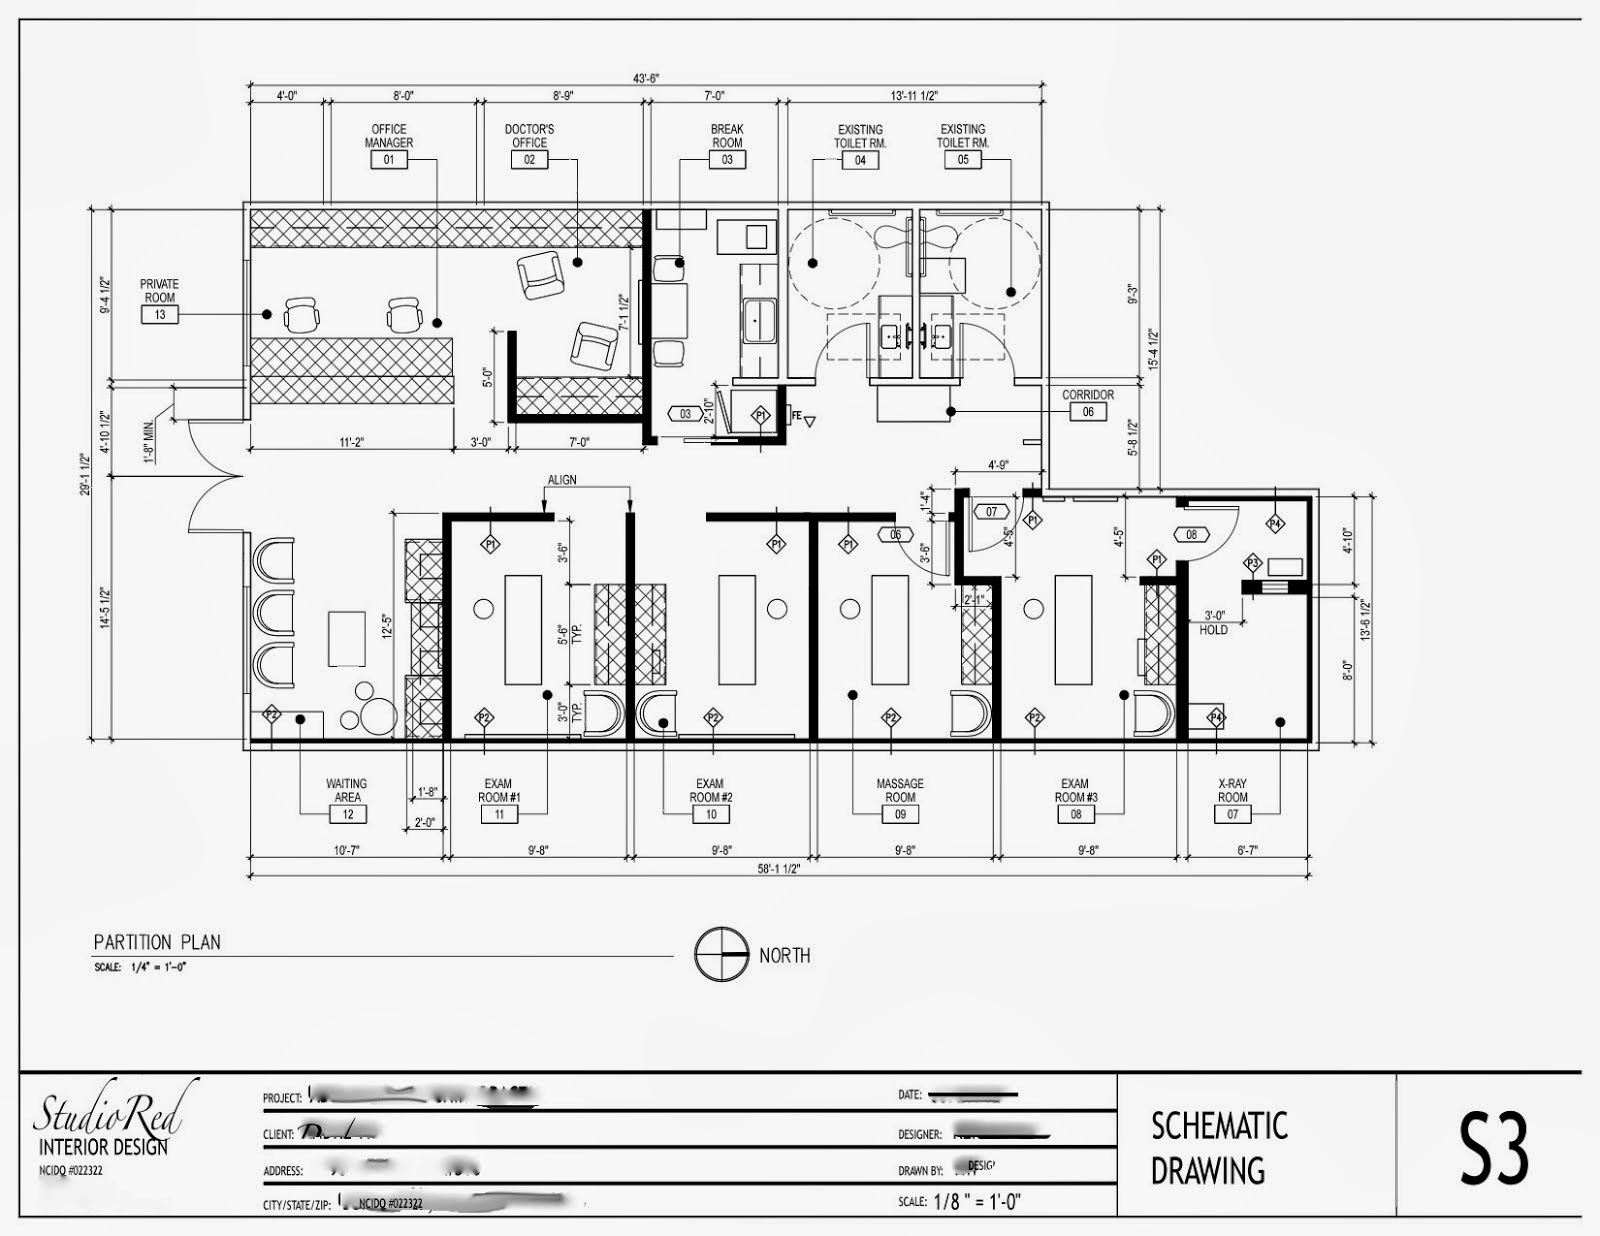 Chiropractic Office Design together with Chiropractic Office Design Ideas additionally Massage Clinic Floor Plans furthermore Rehab Gym Floor Plans likewise 7C 7Ccdn joystudiodesign   7Clarge 7C3 7CChiropractic Office Floor Plan S les. on chiropractic office floor plan samples